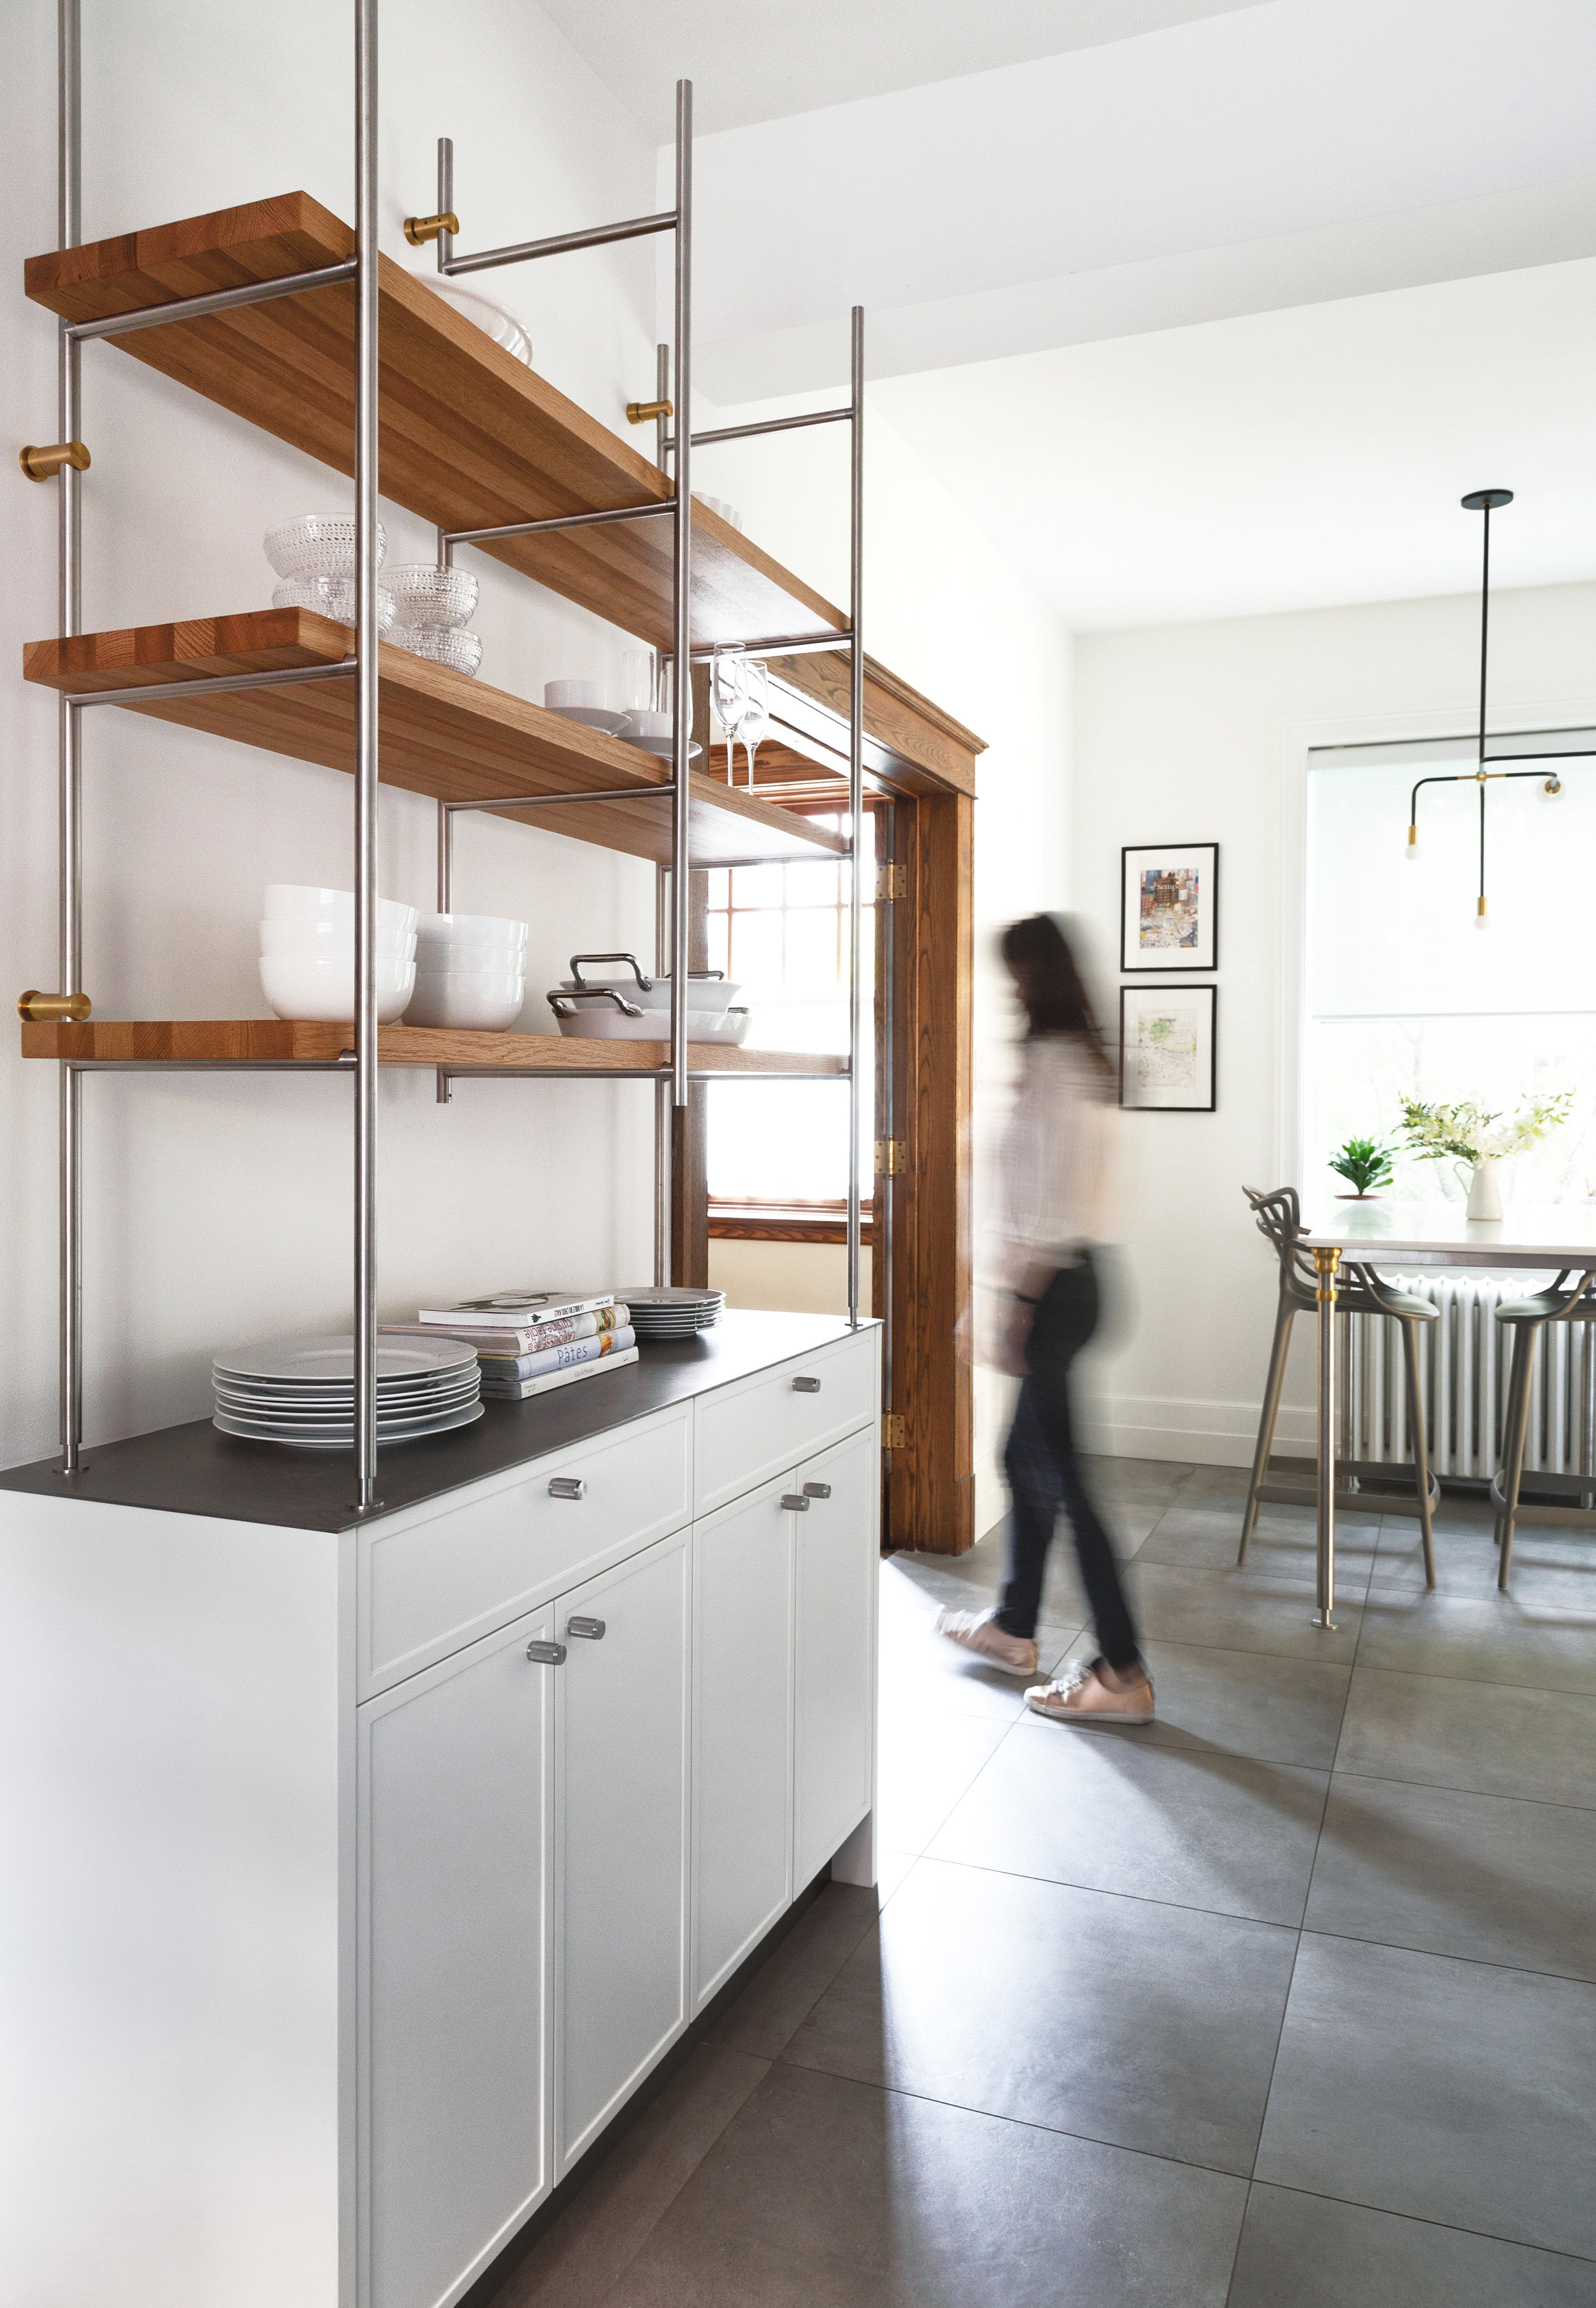 1 - Take advantage of a vertical wall - Place the items that are useful on a daily basis on open shelves and conceal the items that should be hidden in the drawers and cabinets below and voila! Along a bare wall (as we did here) or in front of a decorative wall covering, you get a look that is both versatile and uncluttered.